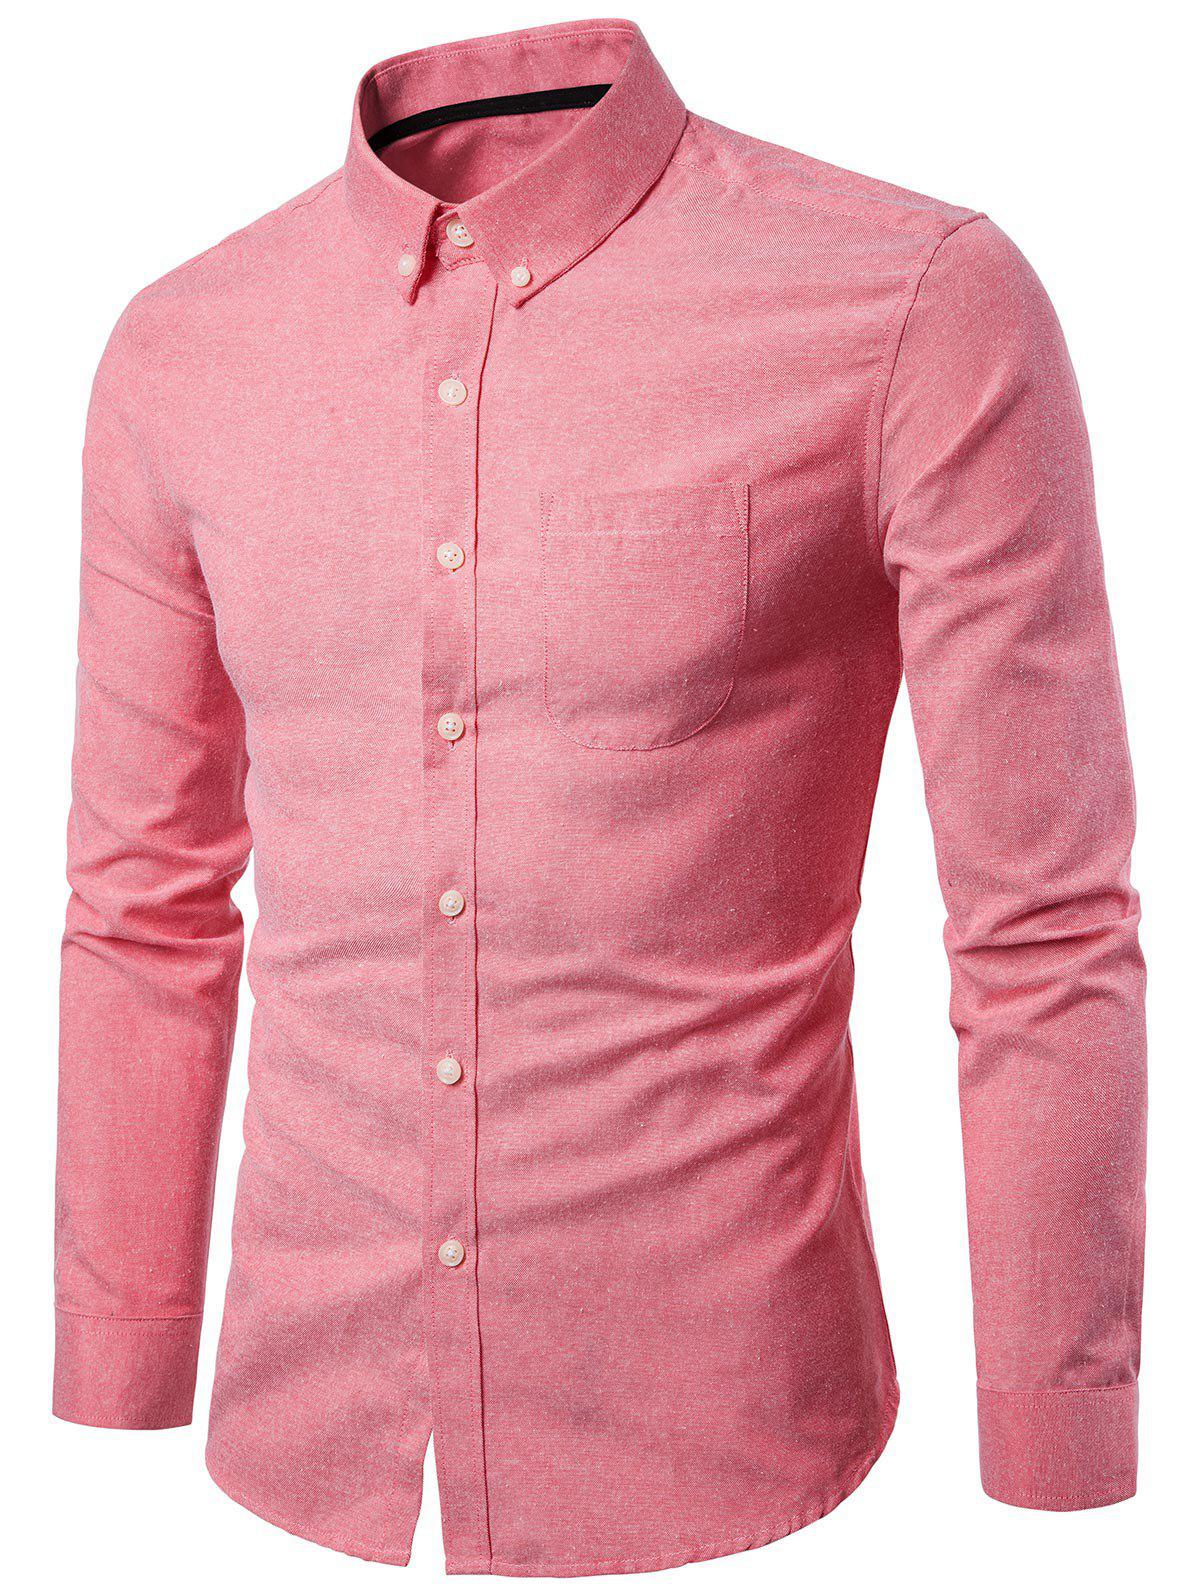 Latest Casual Solid Color Design Long Sleeves Shirt